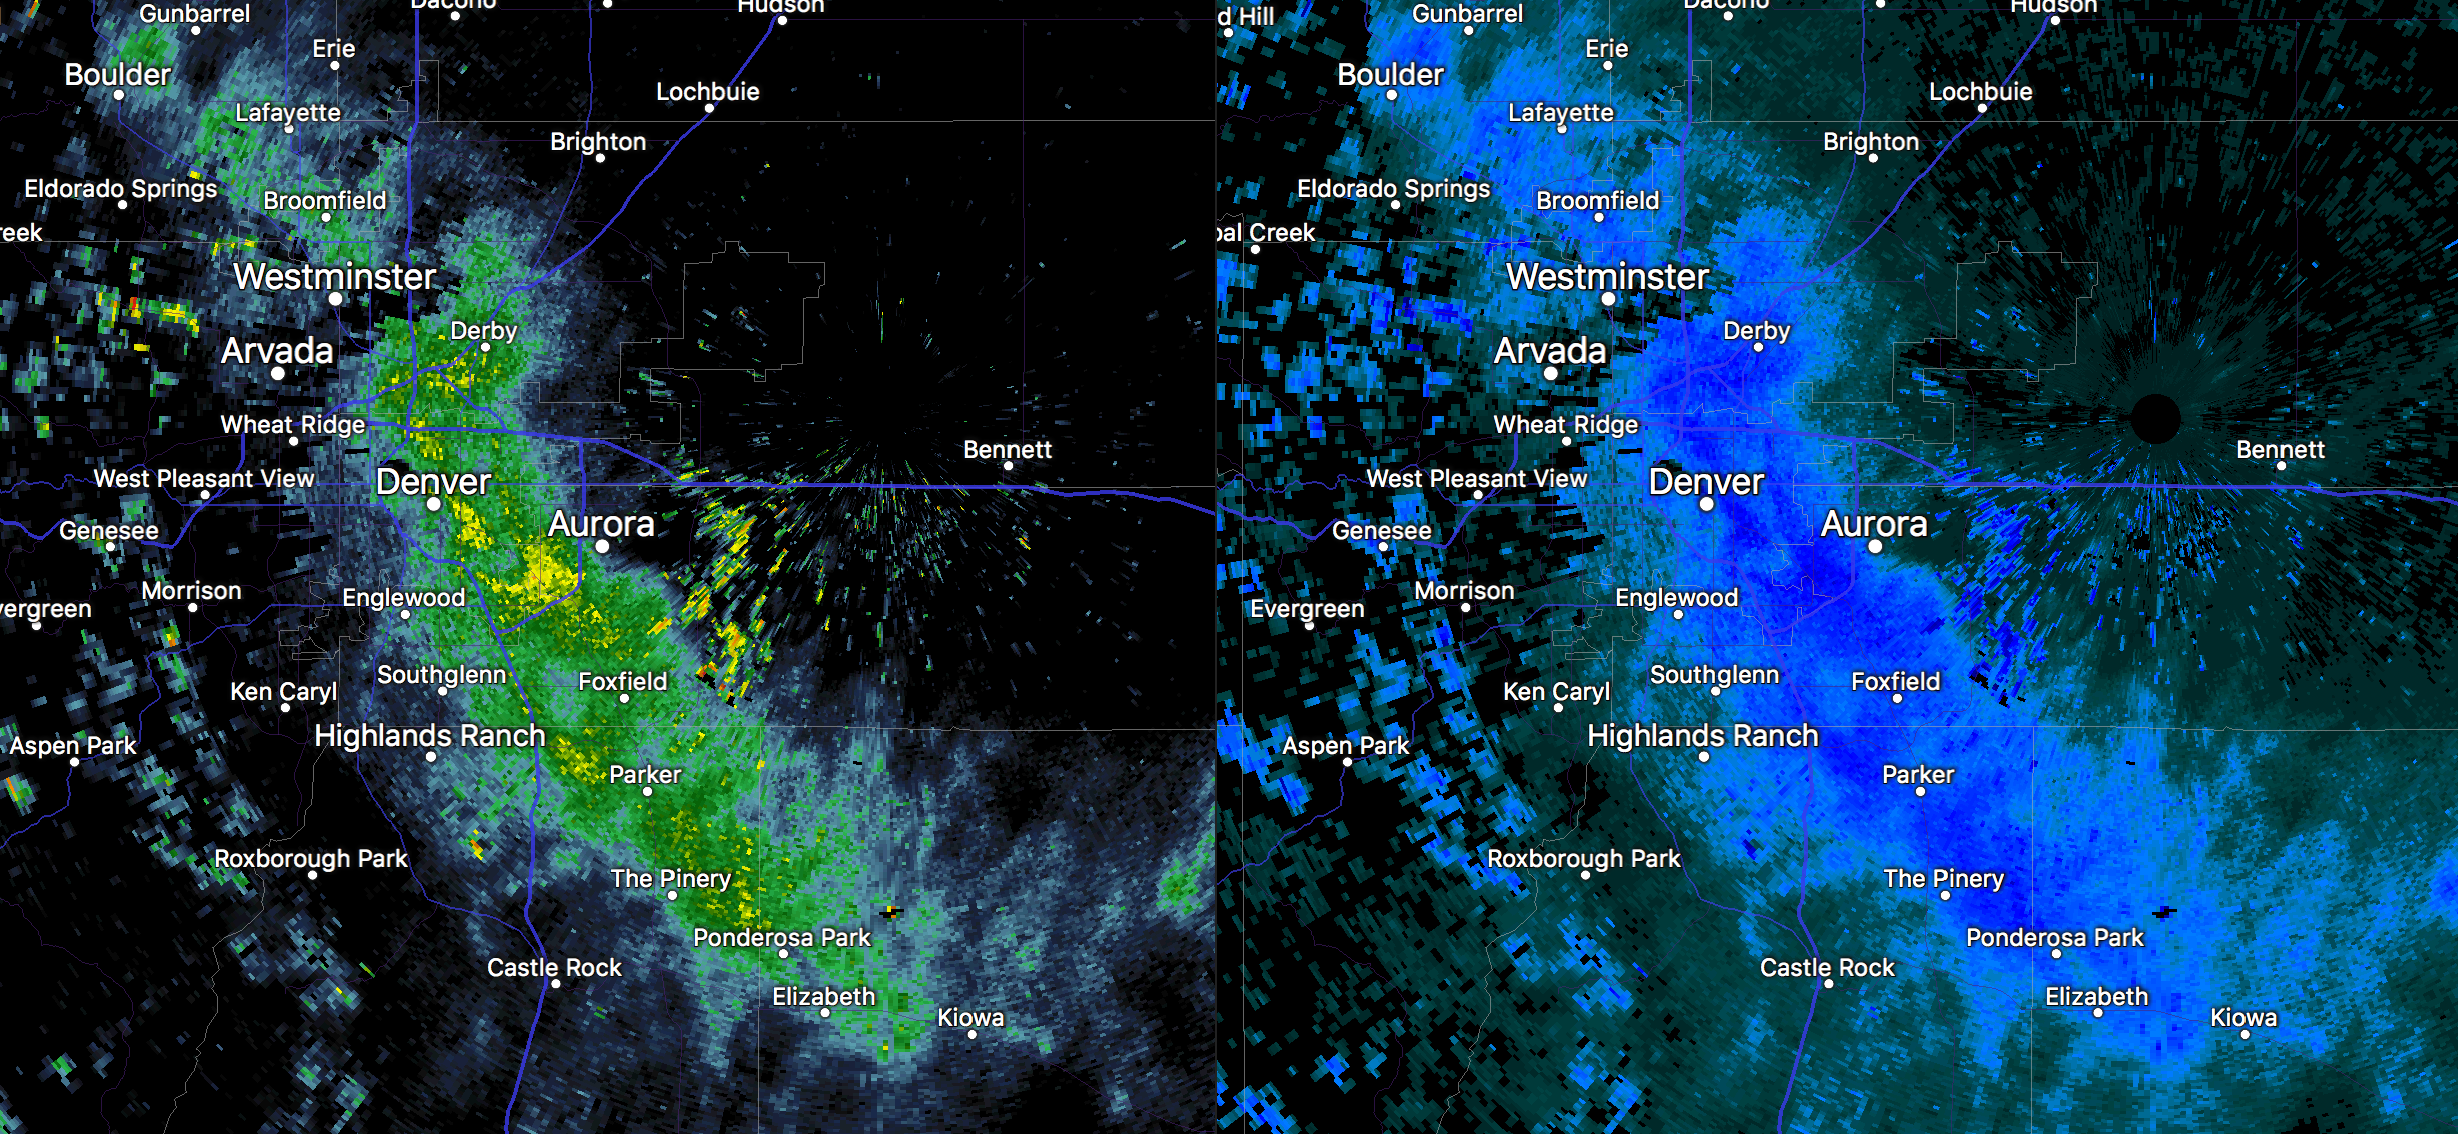 Radar image at 7:35am Monday morning showing moderate to heavy snowfall along and east of I-25 in Denver